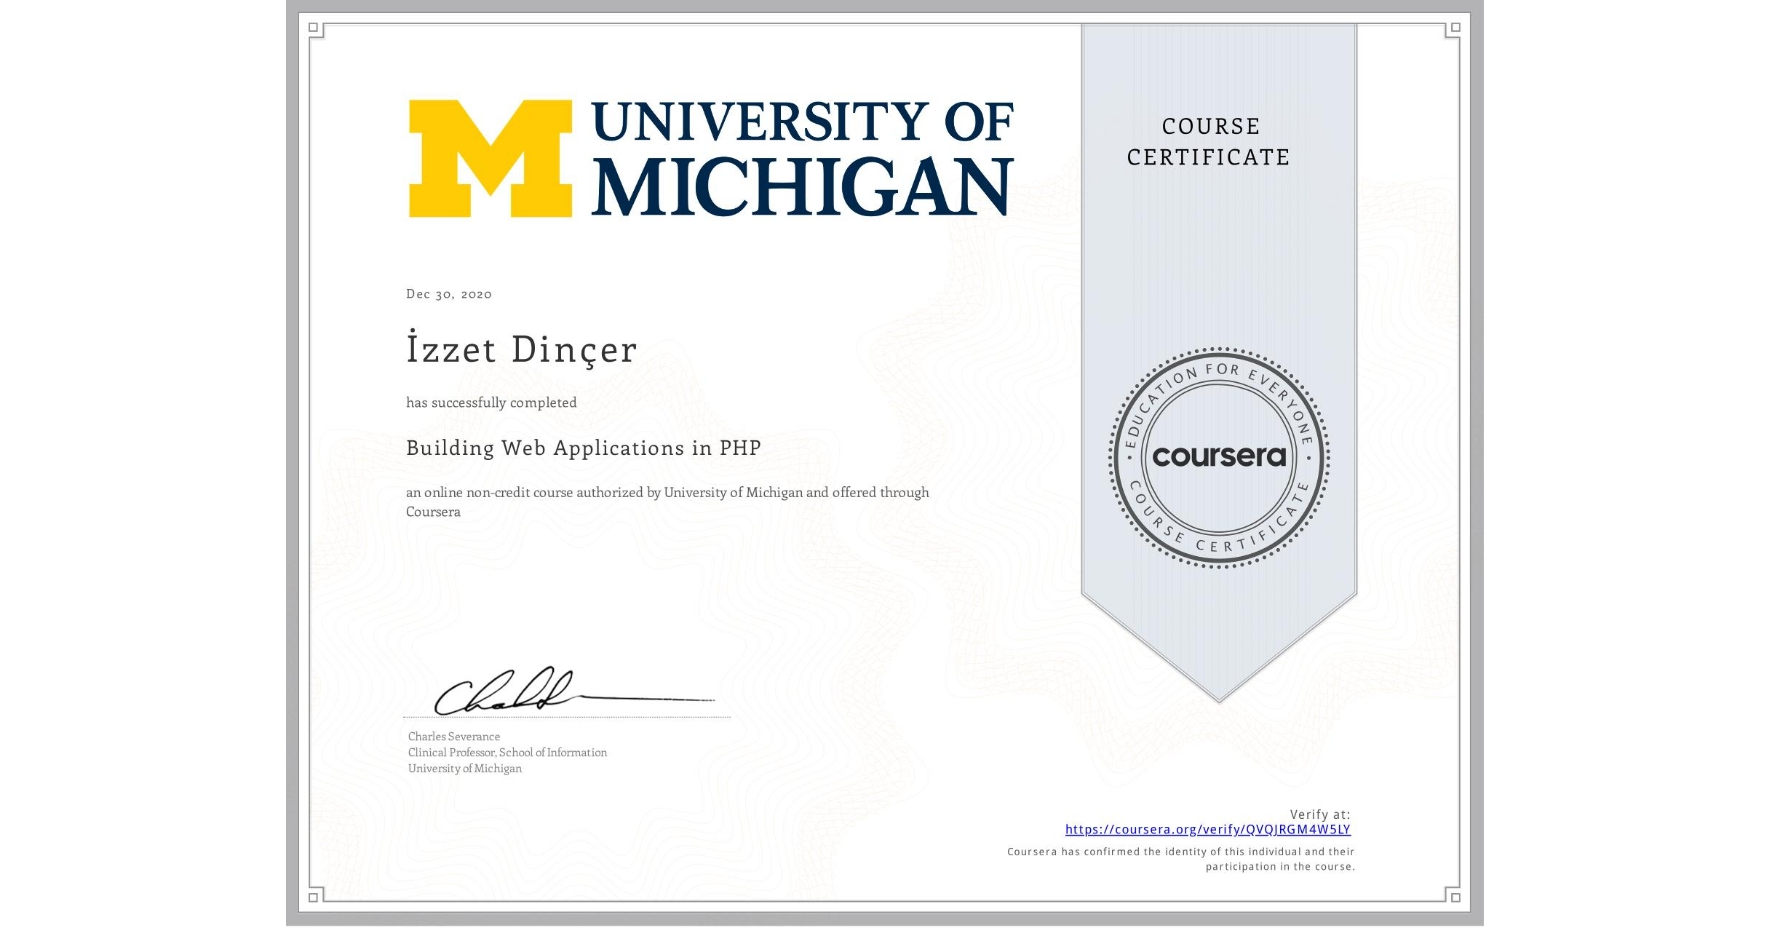 View certificate for İzzet Dinçer, Building Web Applications in PHP, an online non-credit course authorized by University of Michigan and offered through Coursera